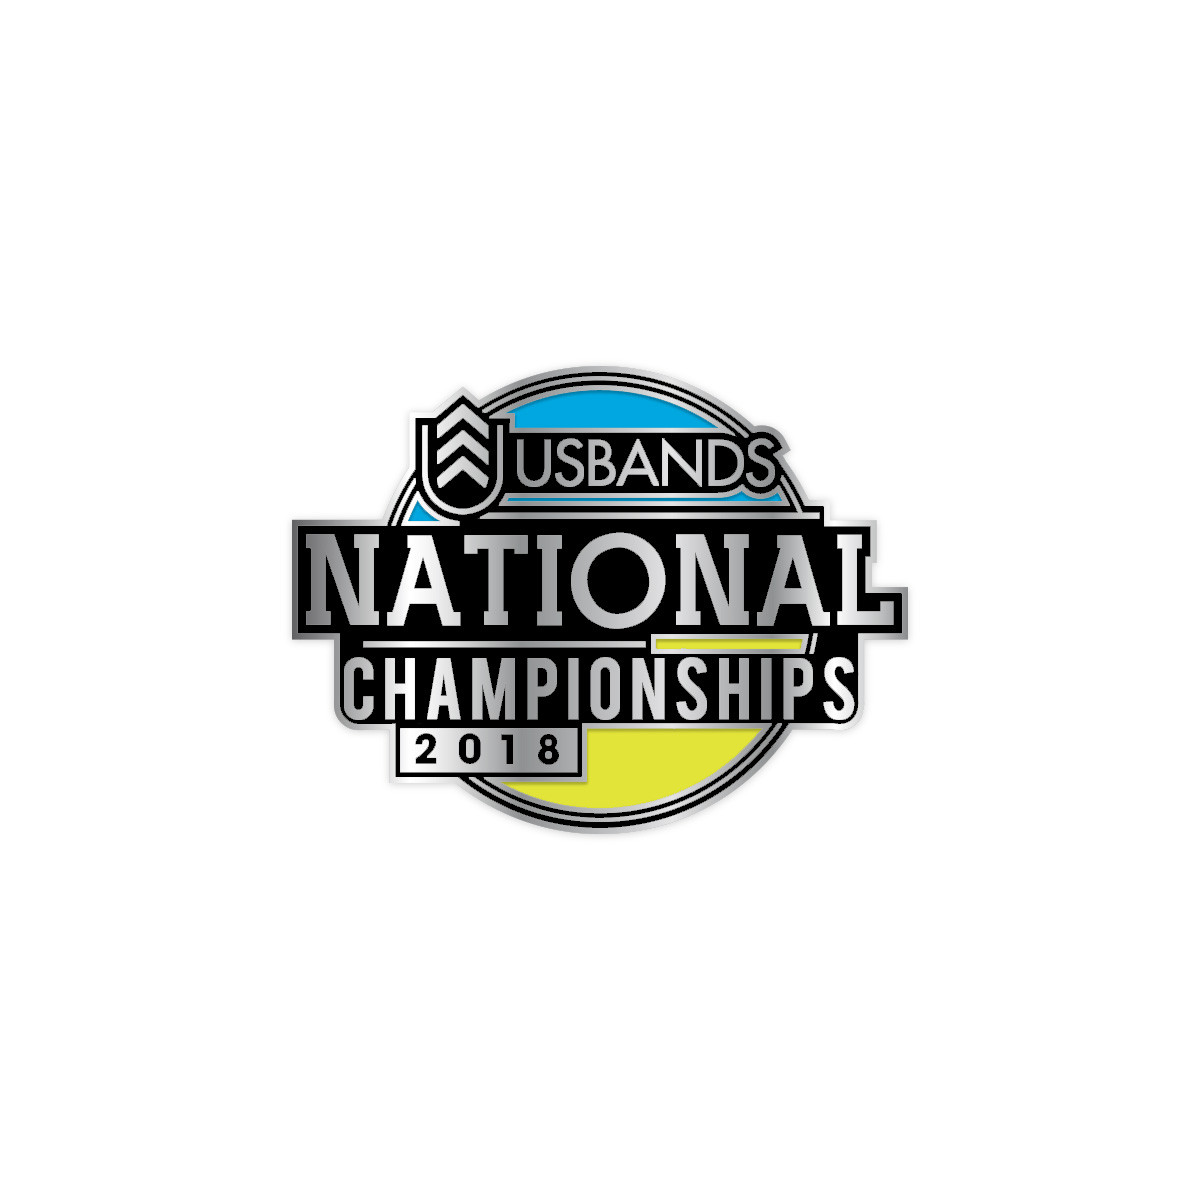 2018 USBands National Championships Pin